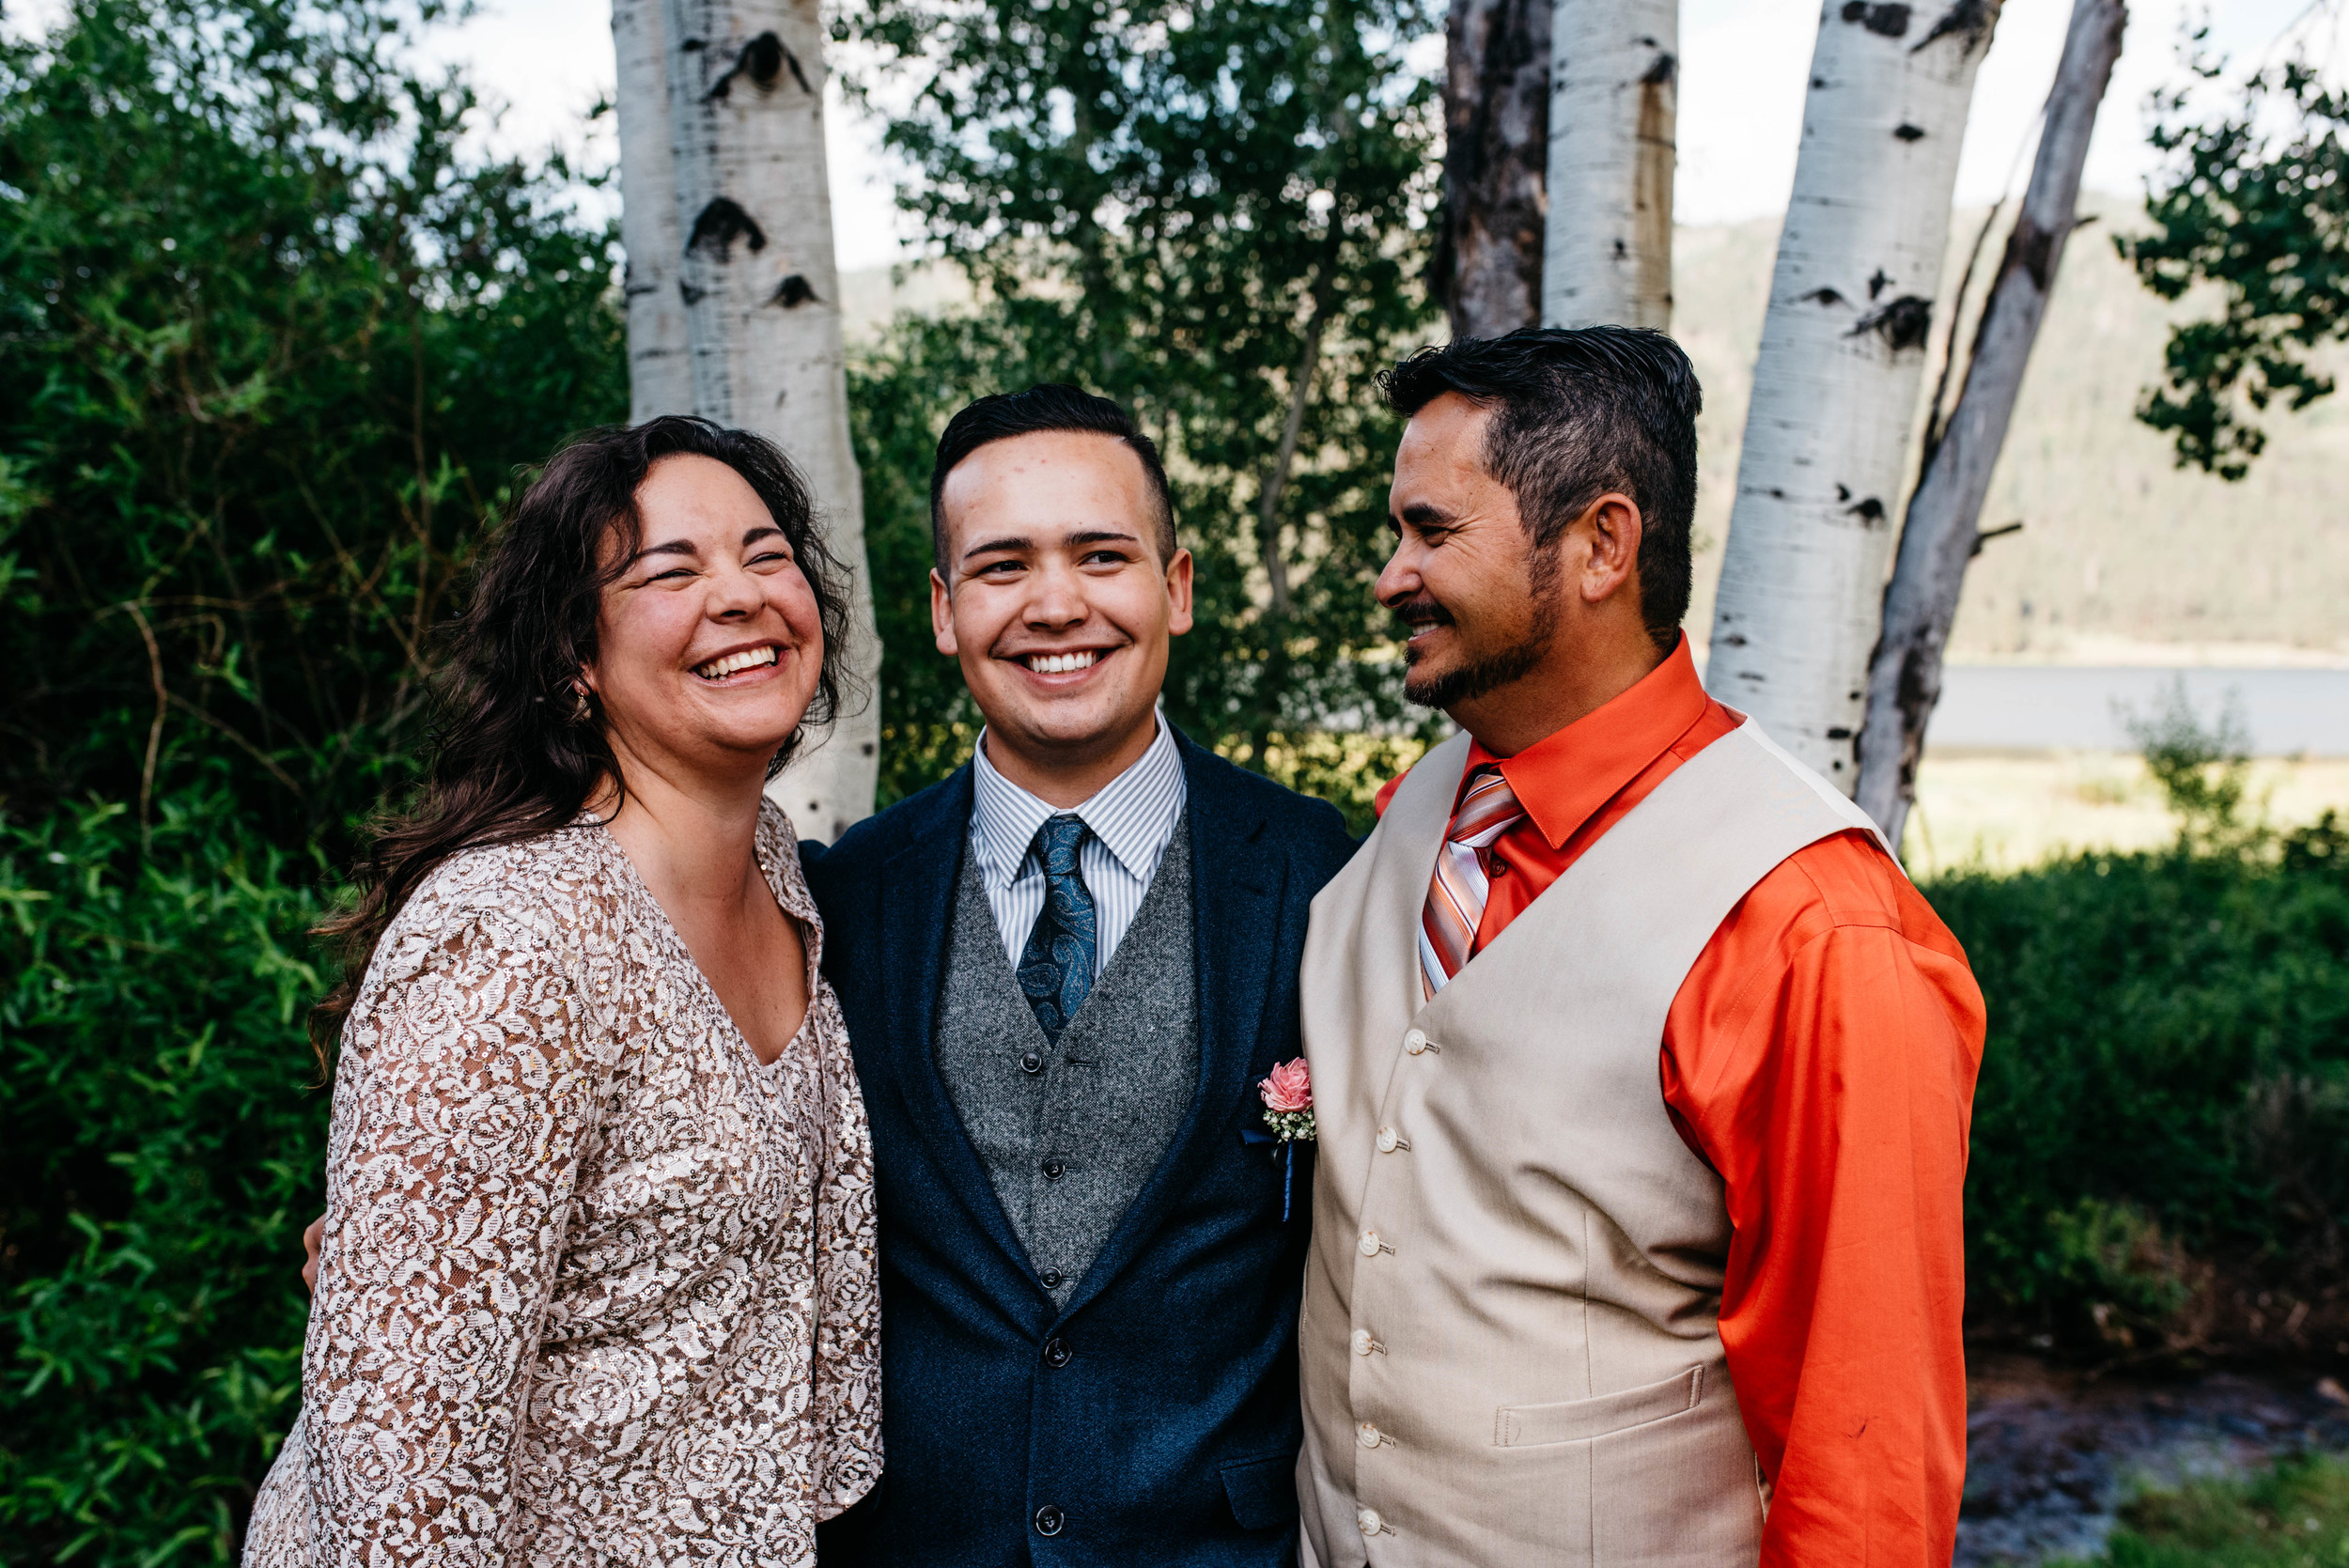 Vallecito Lake Colorado Wedding.jpg